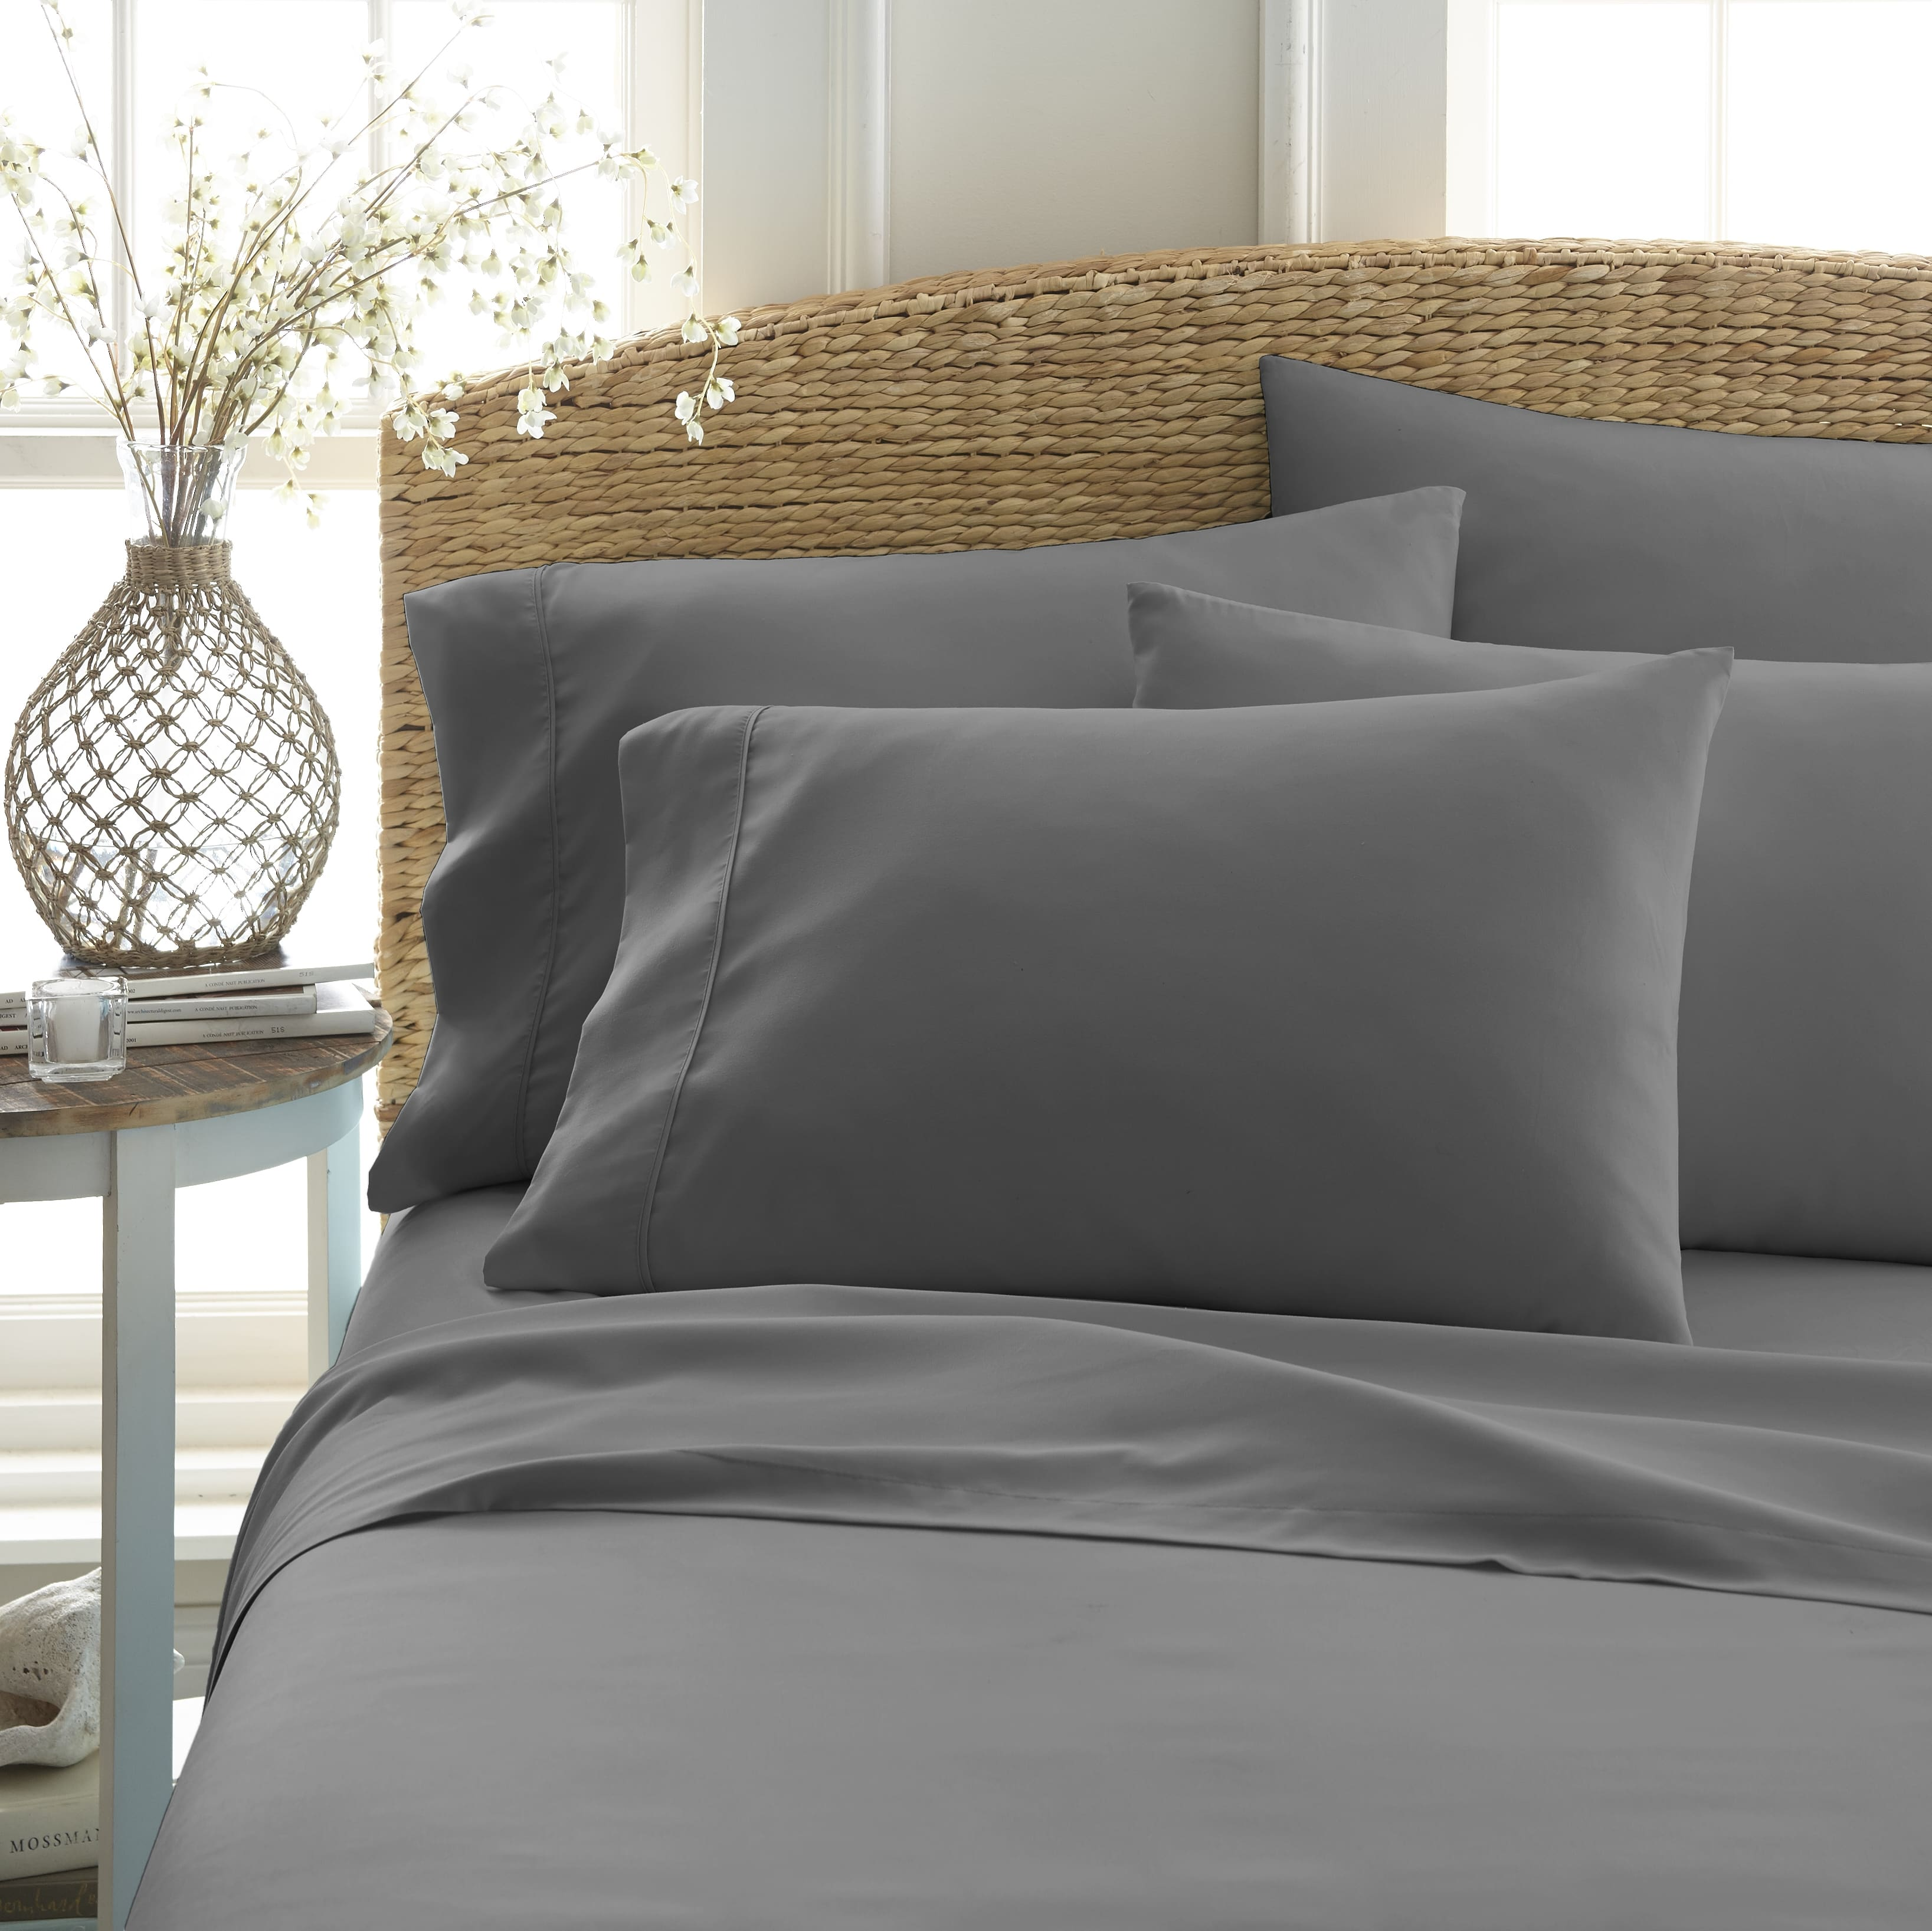 Linens & Hutch 6-Piece Solid Sheet Set- Starting at $18.63 + FS